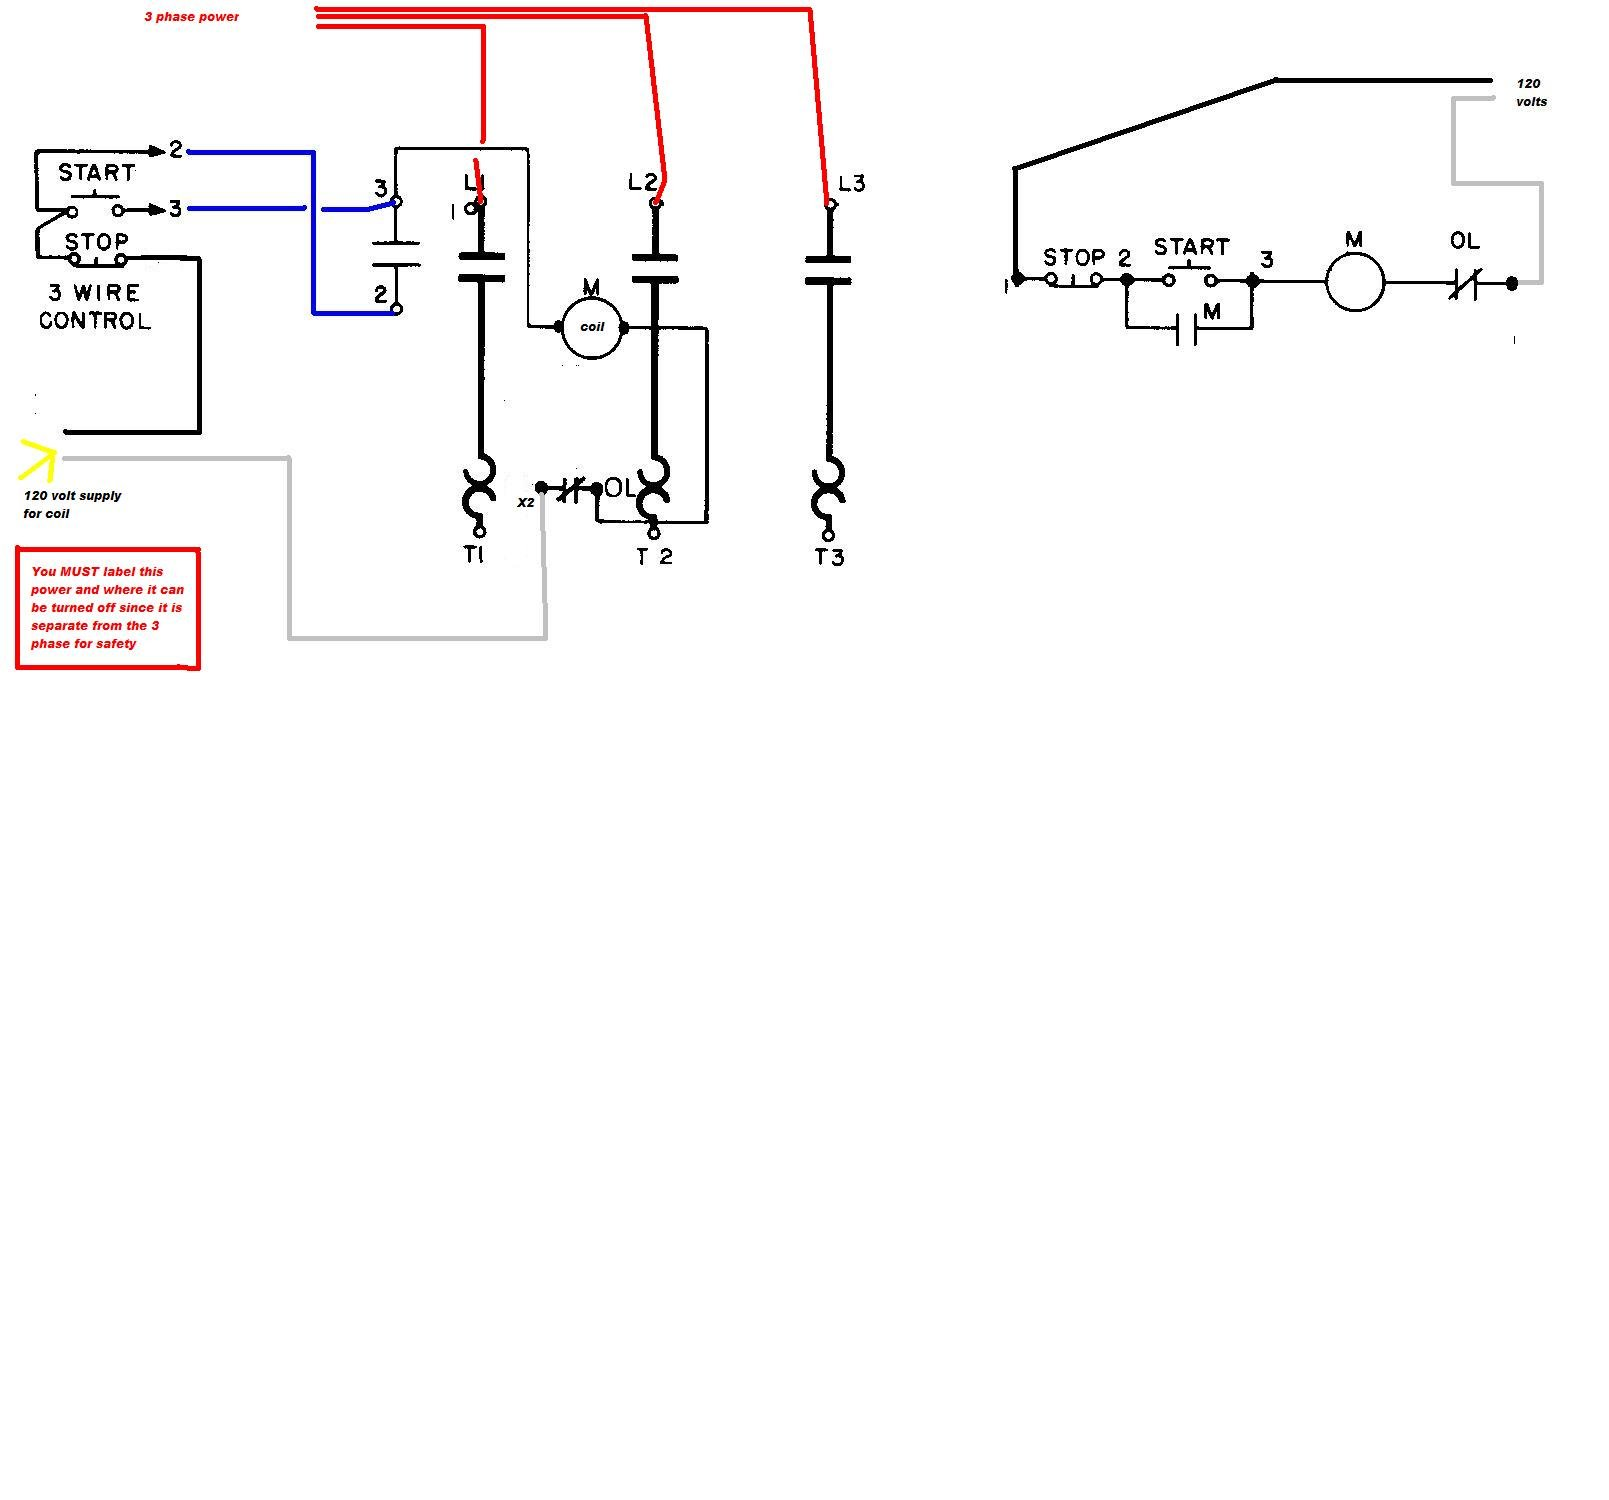 on well pump 115 volt 3 wire wiring diagram